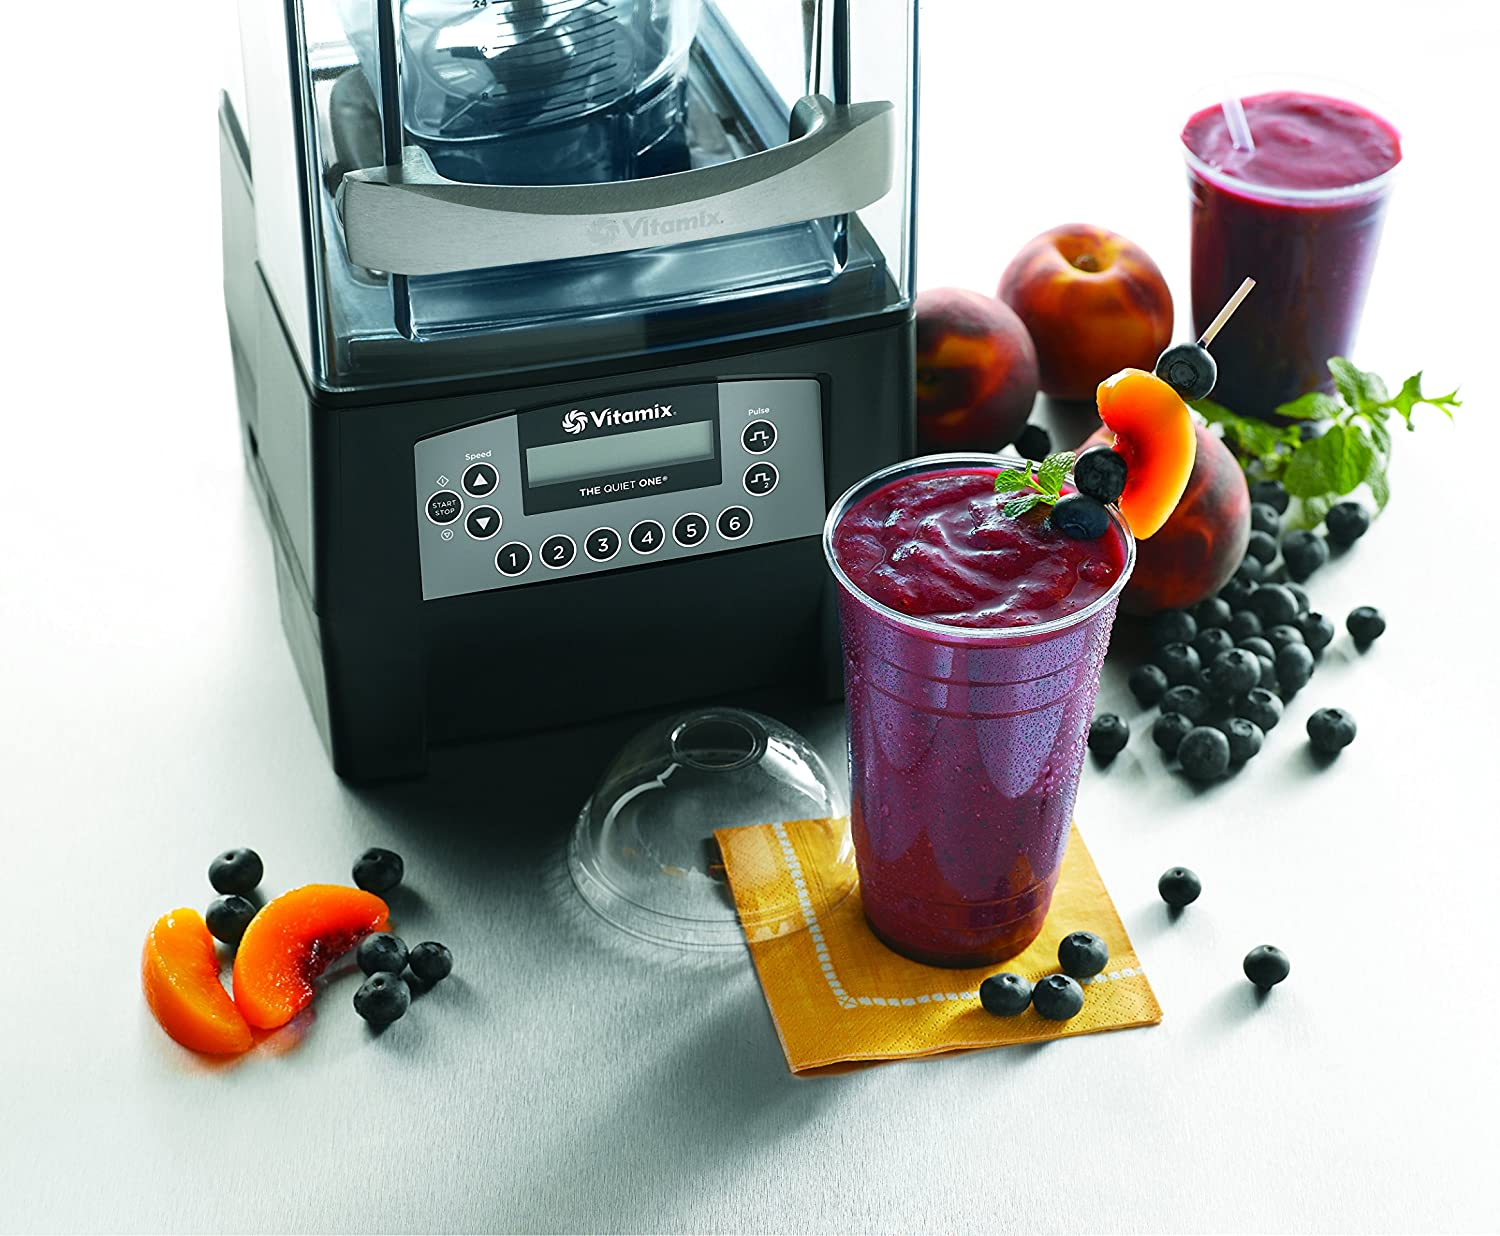 Vitamix 36019 36019-1 Vita-Mix Quiet One licuadora 48 oz, color ...